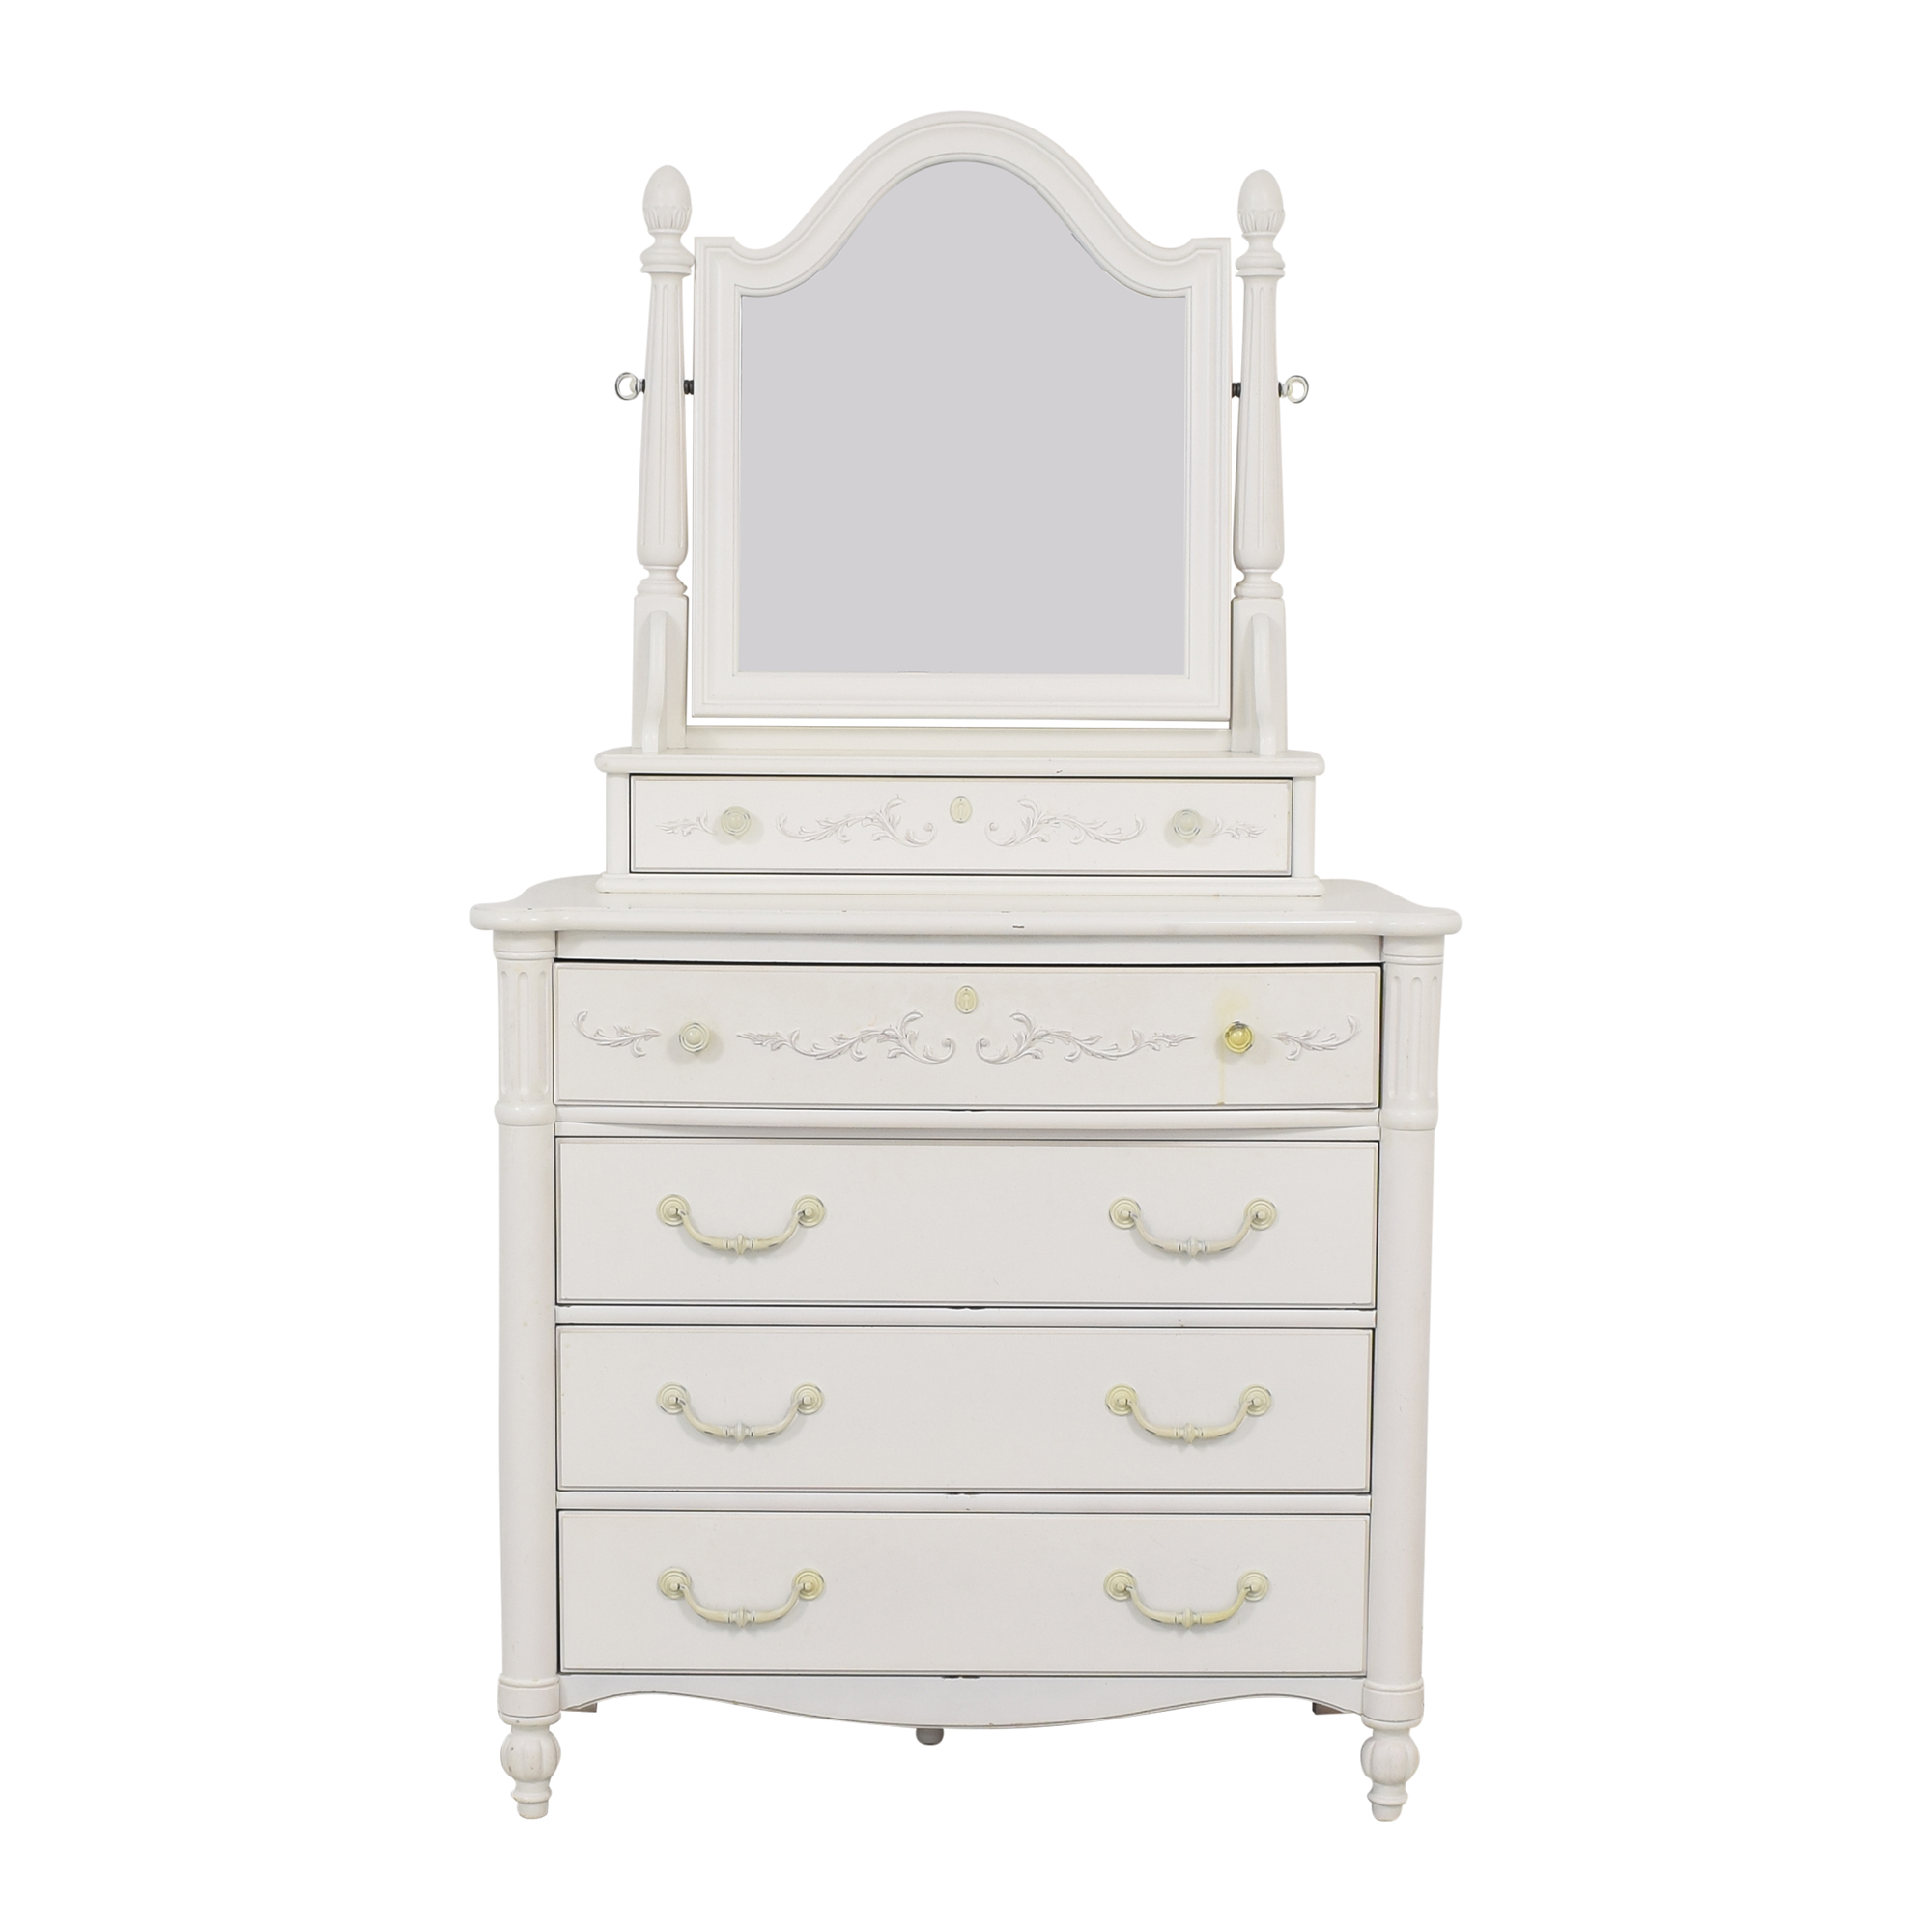 Stanley Furniture Stanley Furniture Young America Isabella Dresser with Tilting Mirror Storage